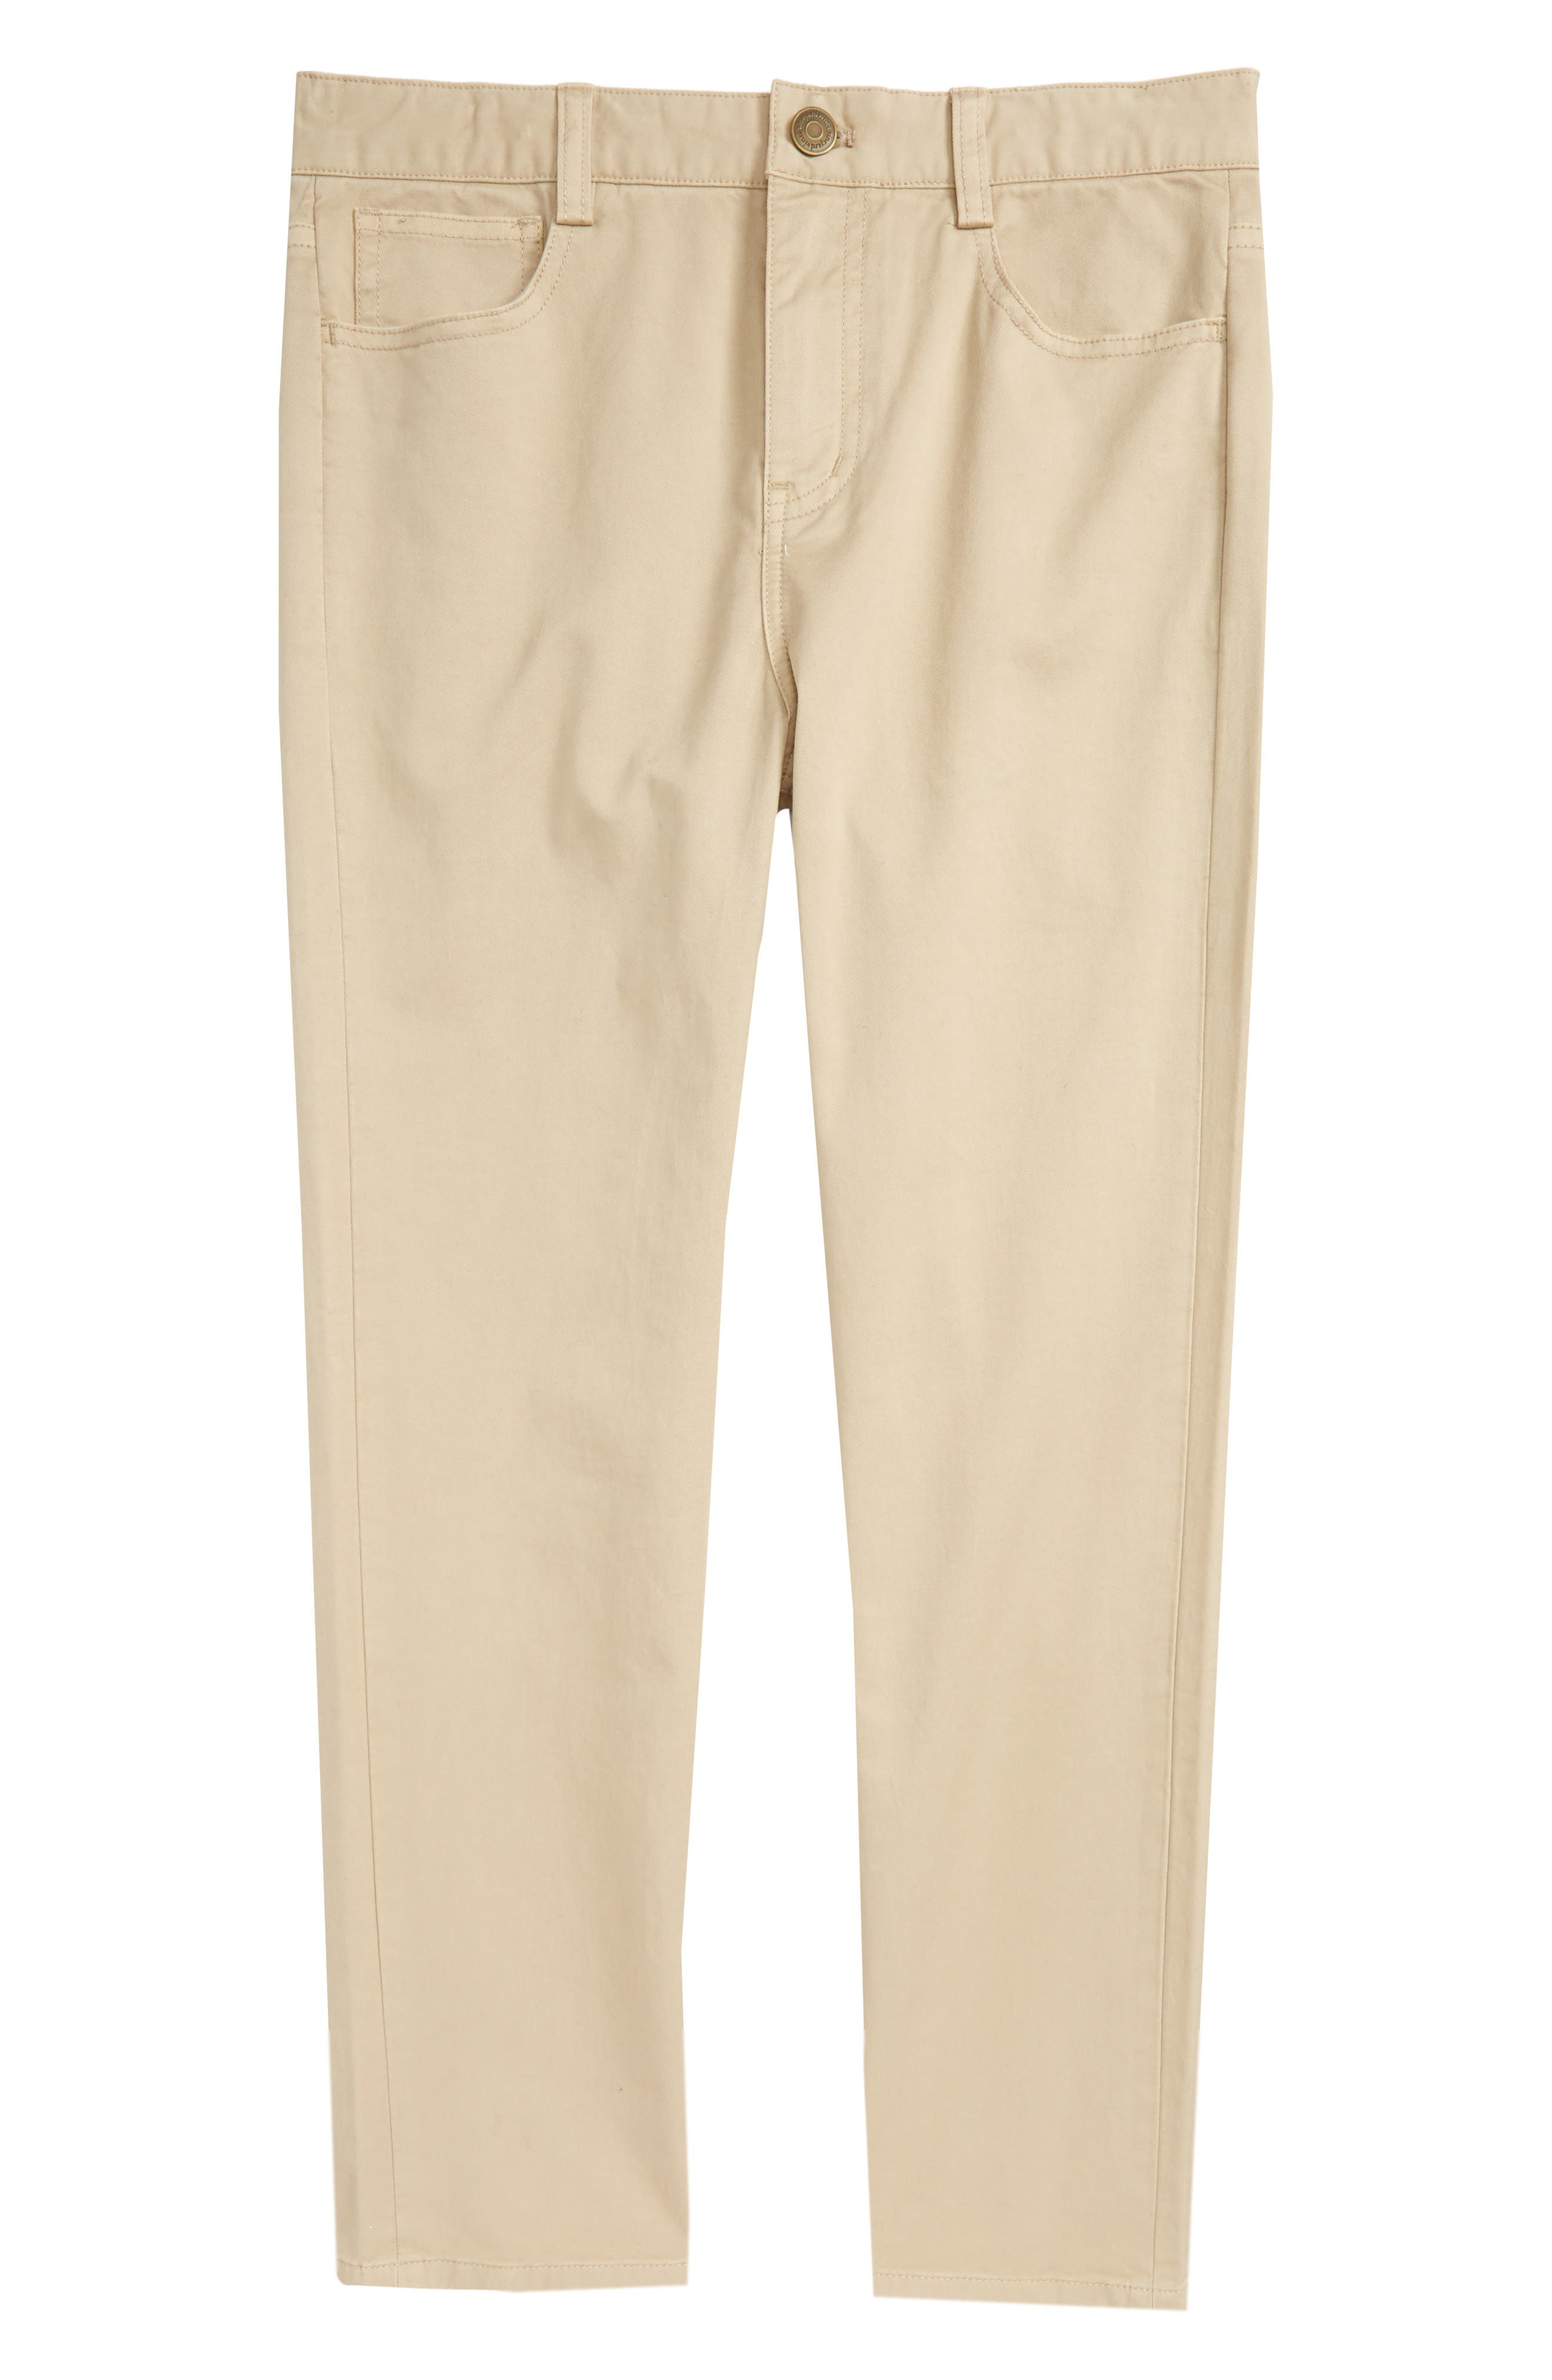 Stretch Twill Pants,                         Main,                         color, 250